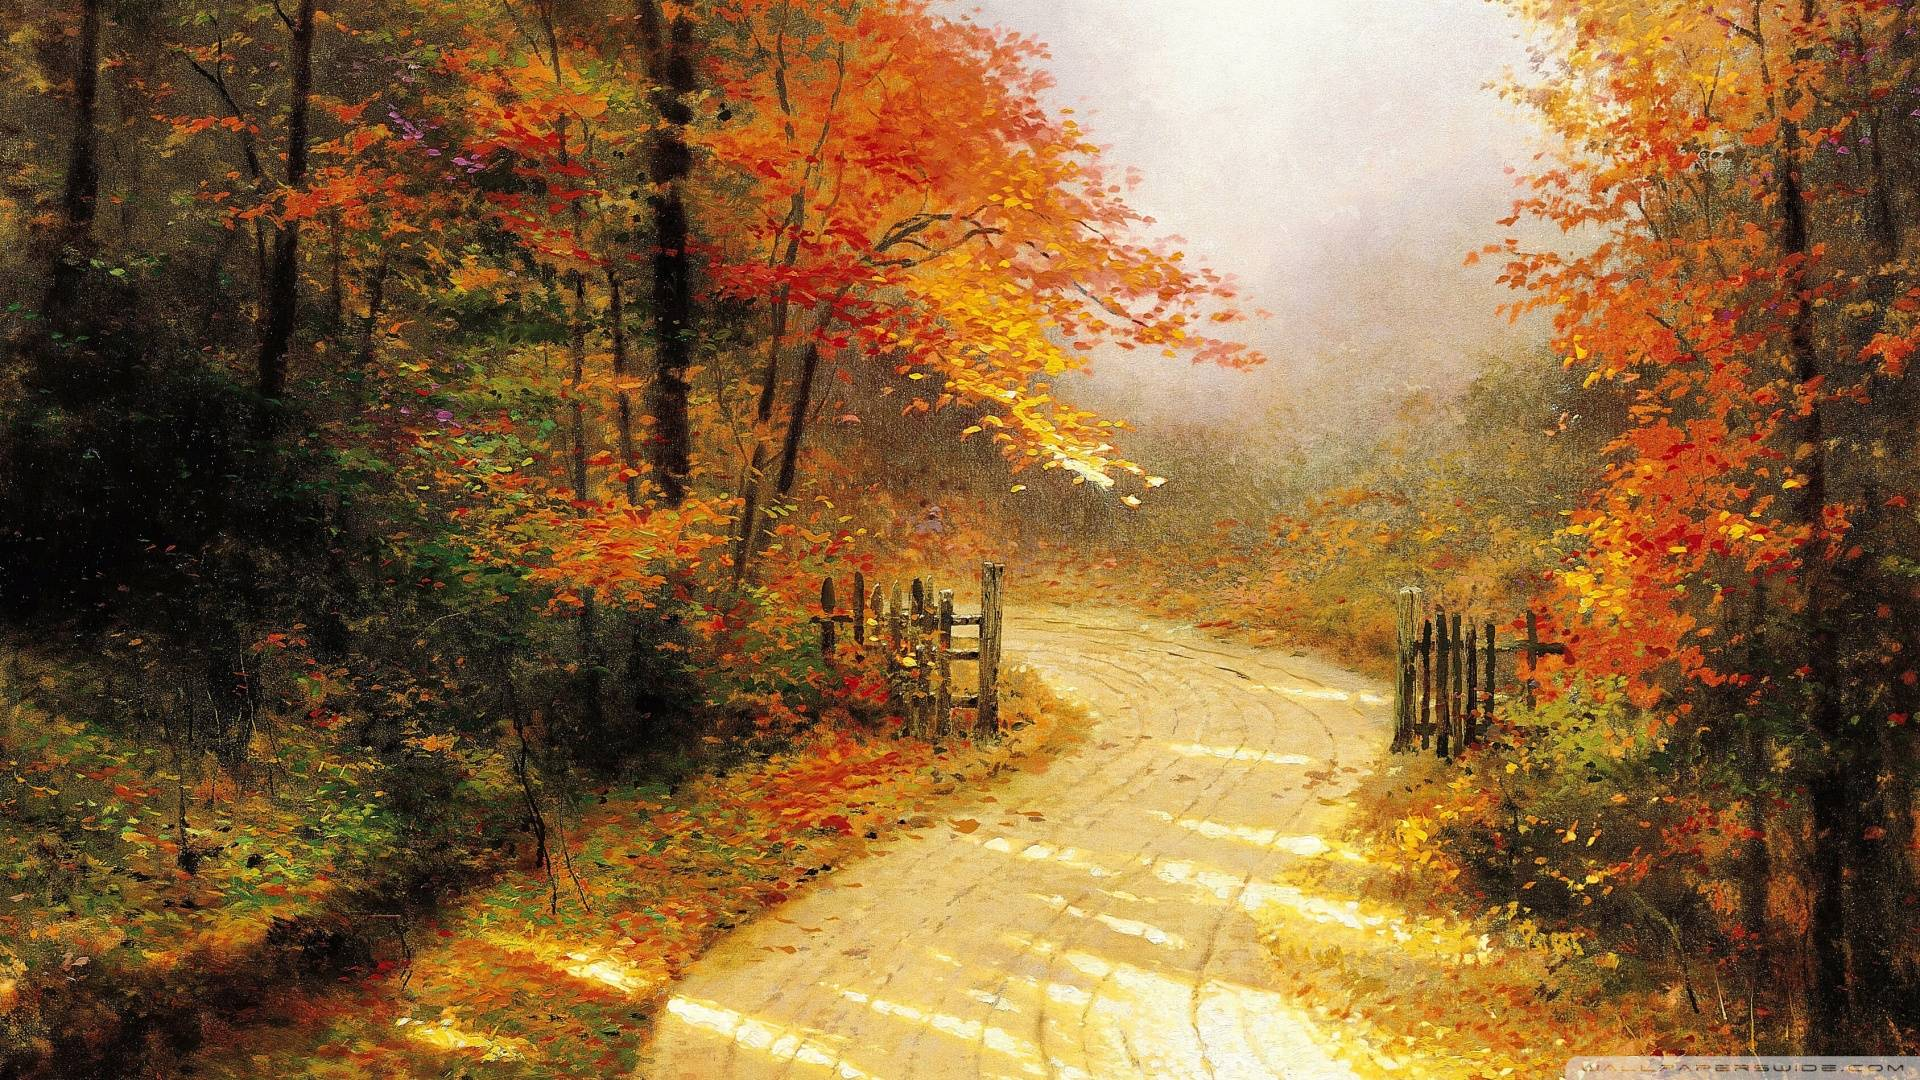 Download Autumn Lane By Thomas Kinkade Wallpaper 1920x1080 .